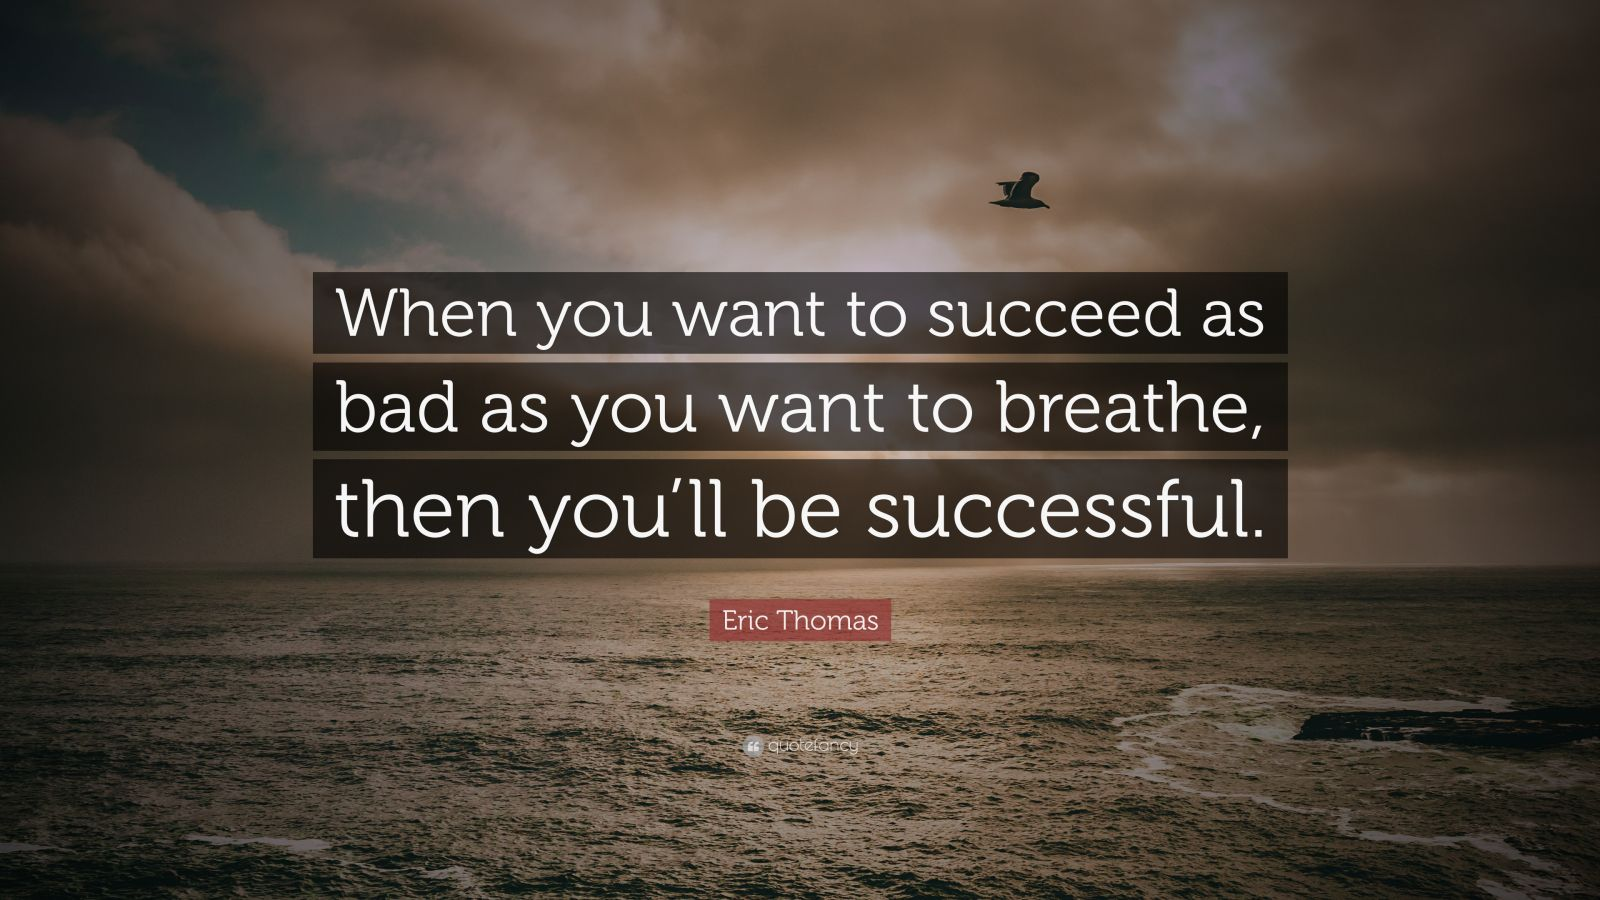 eric thomas quote when you want to succeed as bad as you want to breathe then you ll be. Black Bedroom Furniture Sets. Home Design Ideas